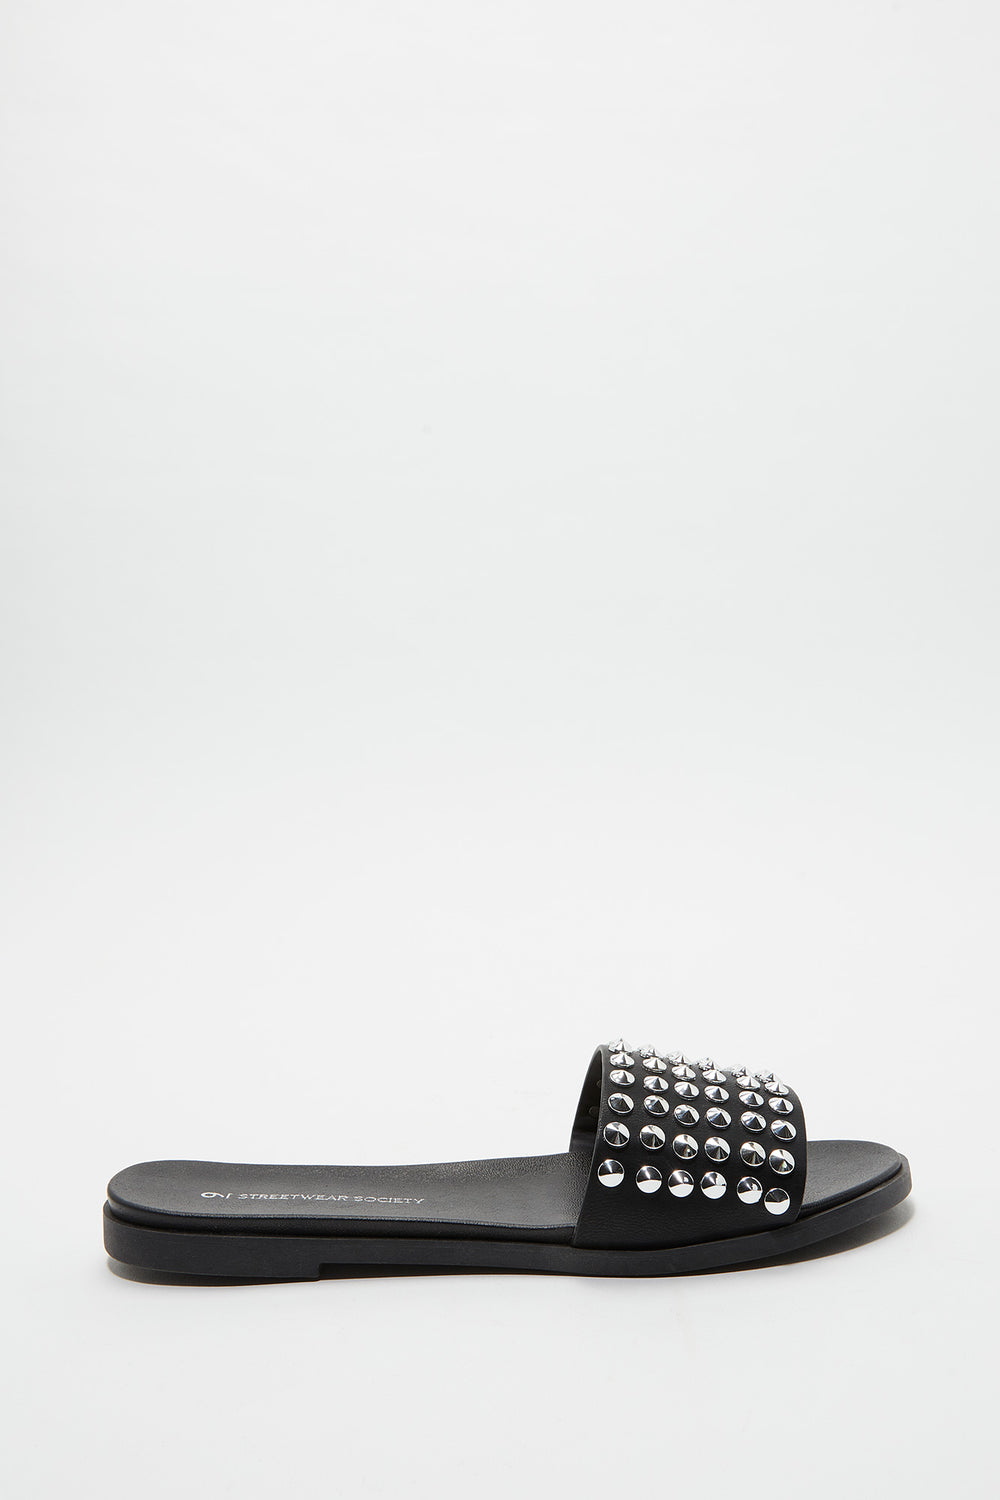 Studded Faux Leather Slide Black